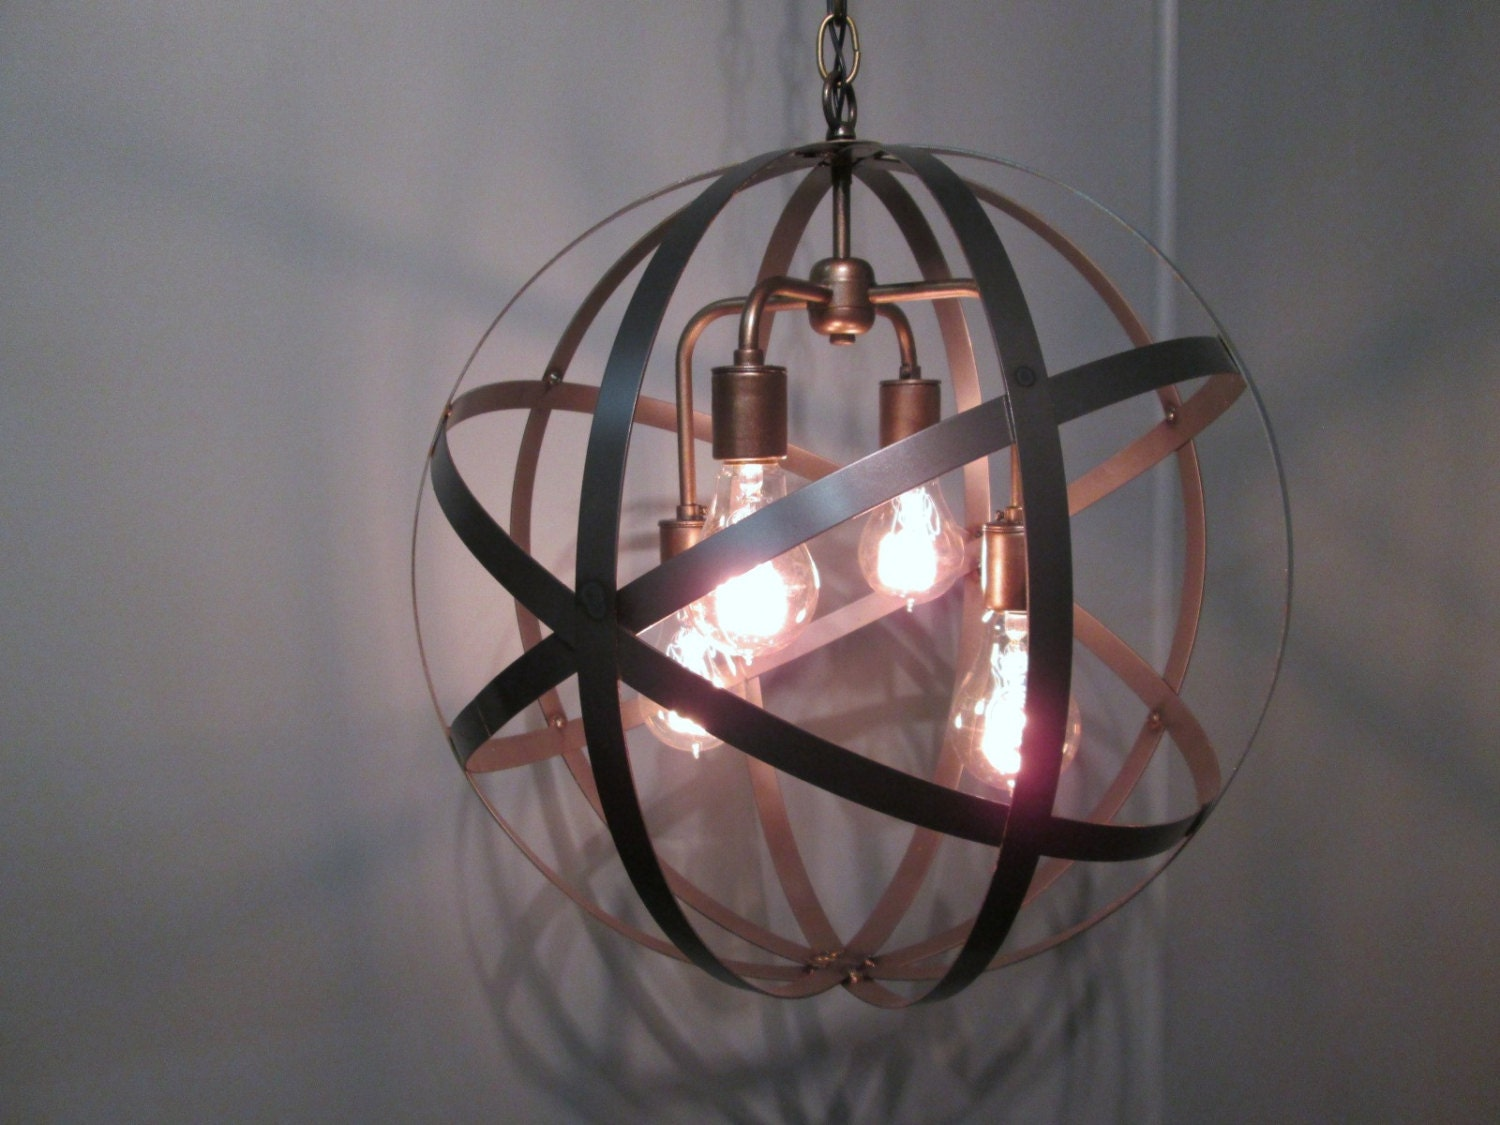 industrial orb ceiling light chandelier 18 diameter